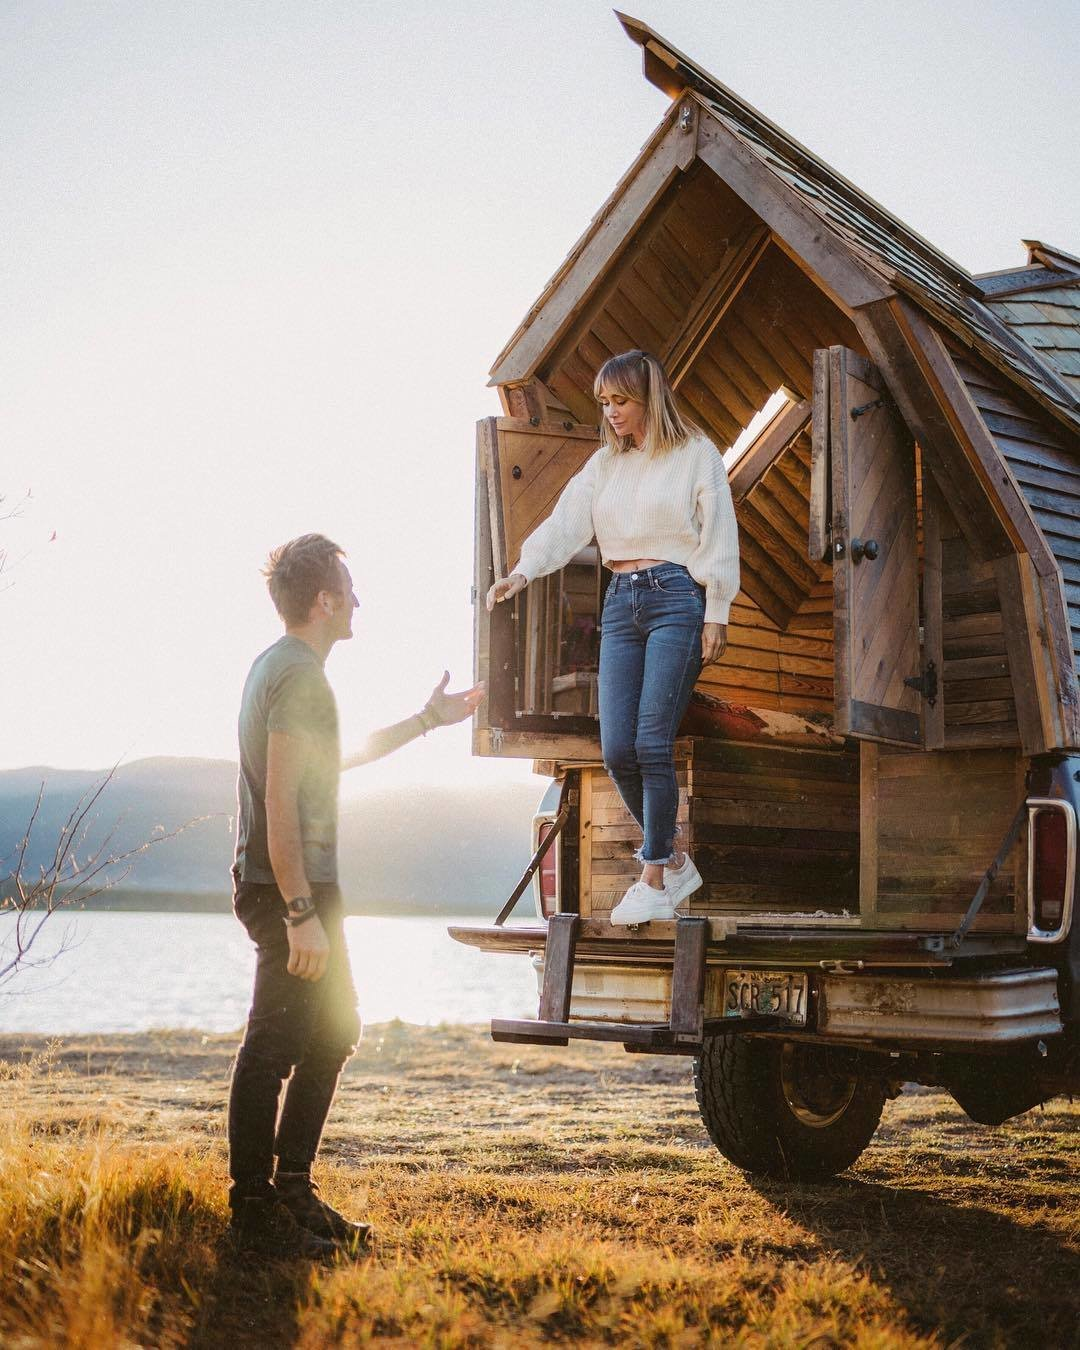 Exterior, Wood Siding Material, Shingles Roof Material, Tiny Home Building Type, A-Frame RoofLine, Cabin Building Type, and Camper Building Type Witzling and Underwood stepping out of the truck cabin.  Best Photos from 10 Tiny Home Dwellers You Should Follow on Instagram Right Now